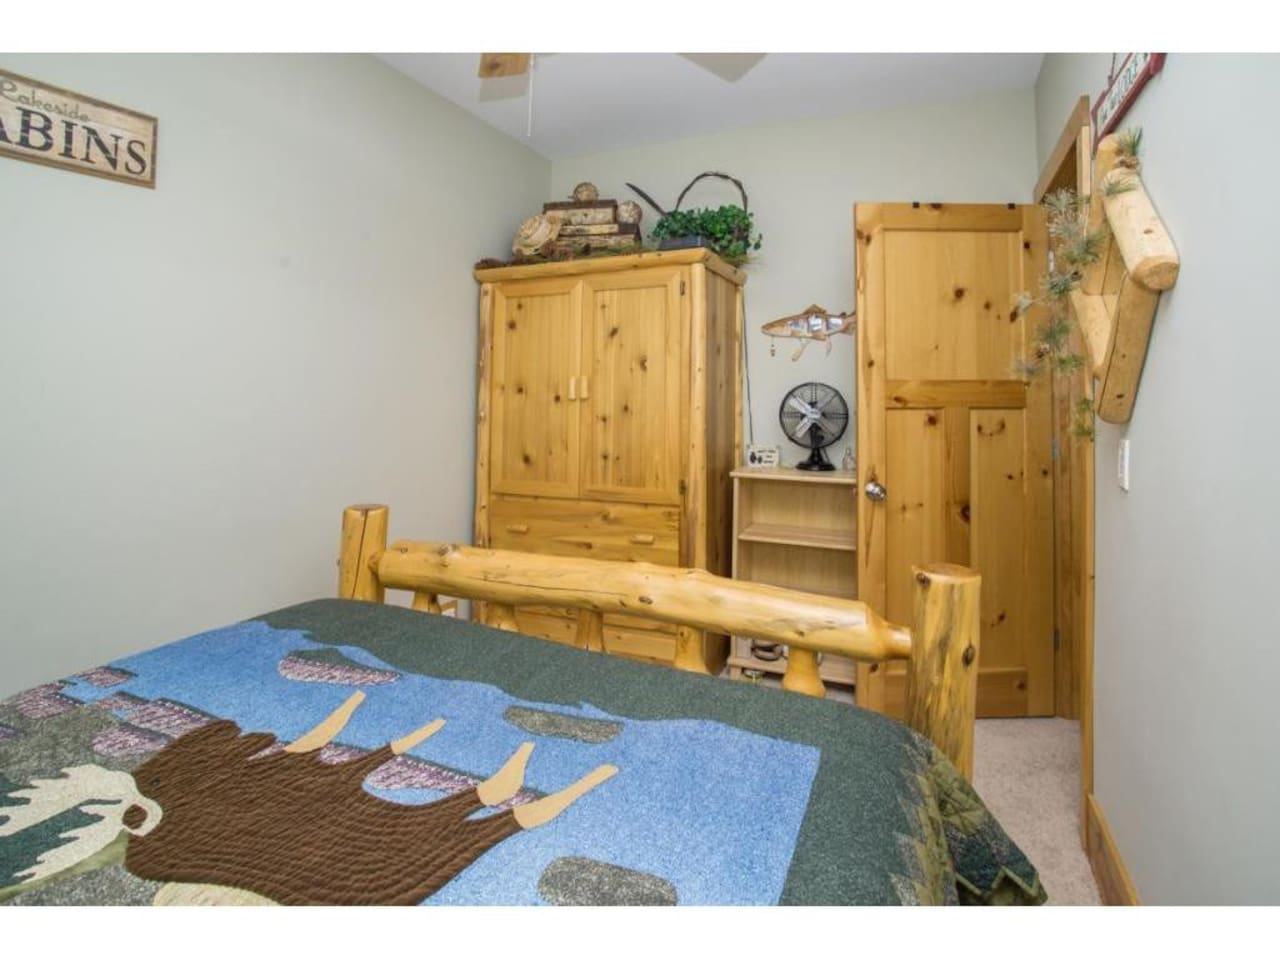 Moose room is beautifully decorated with more authentic knotty log furniture.